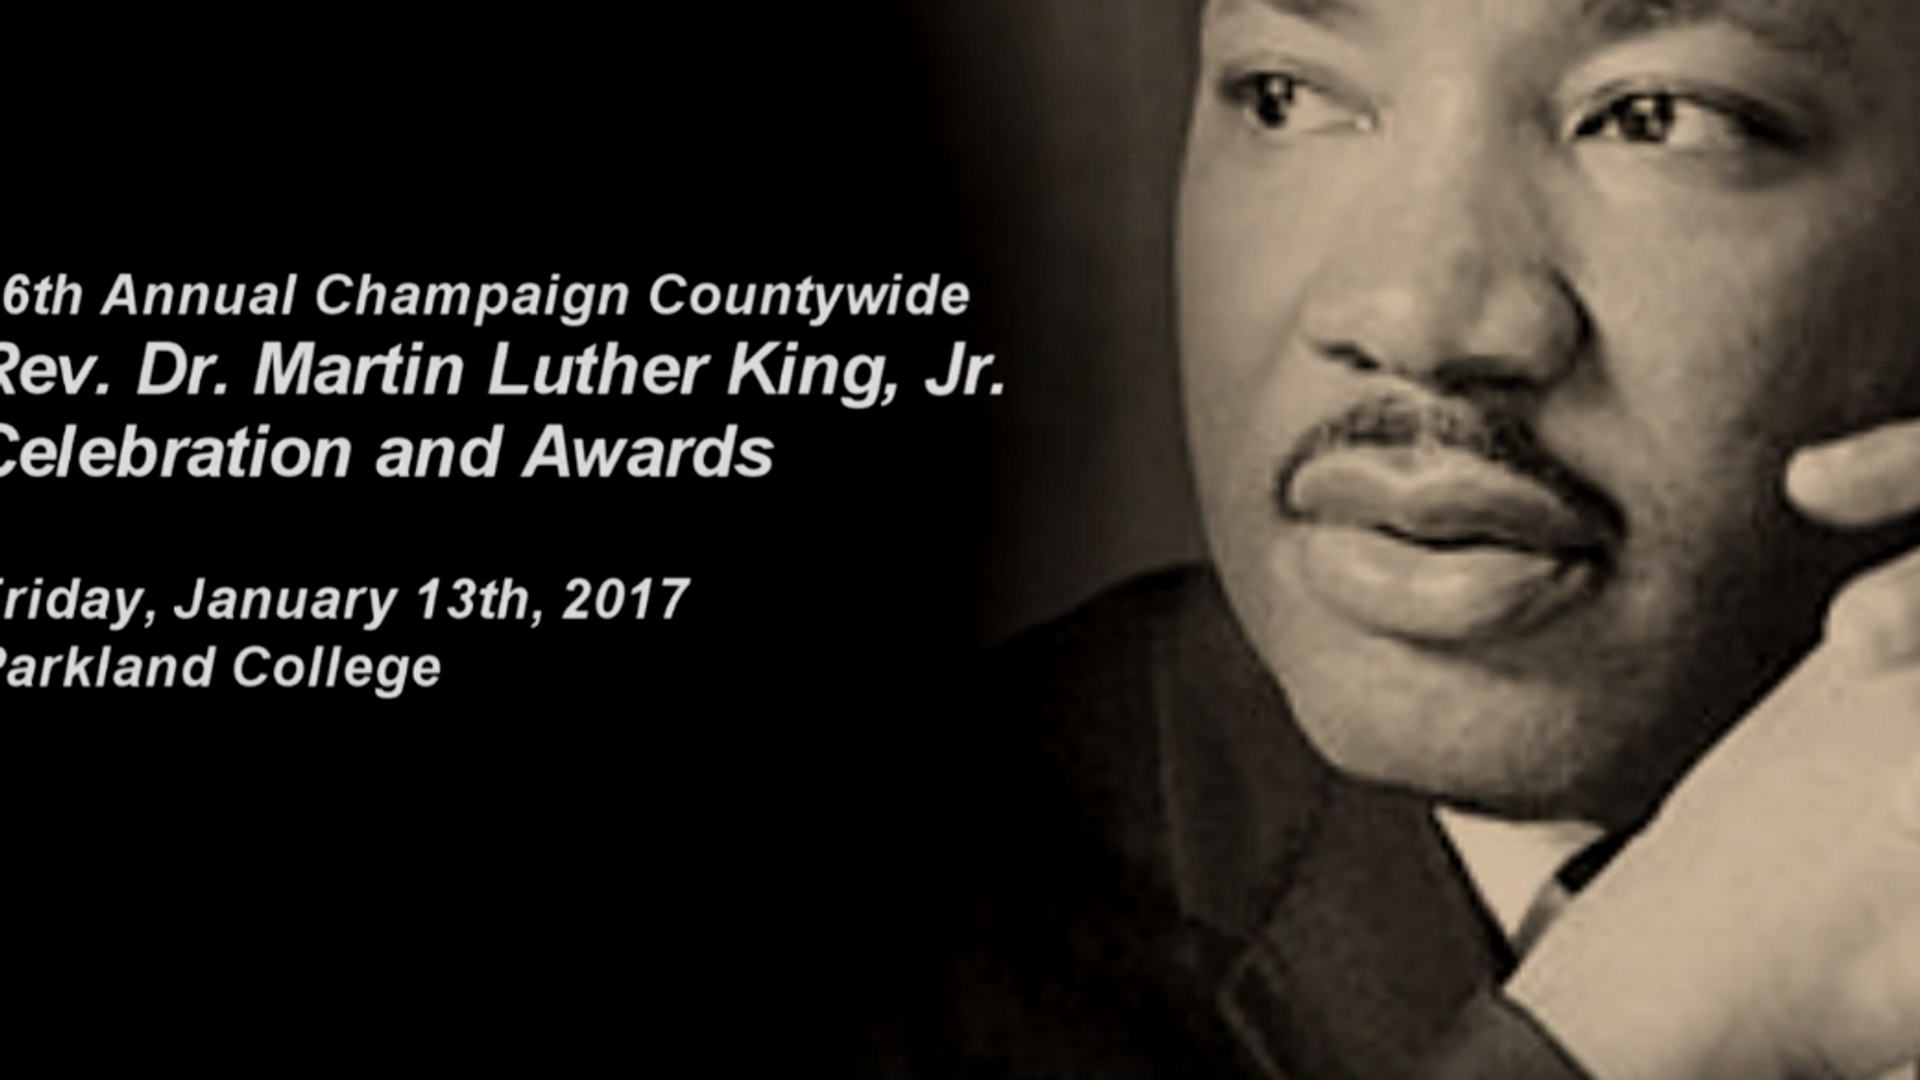 16th Annual Champaign County MLK Celebration